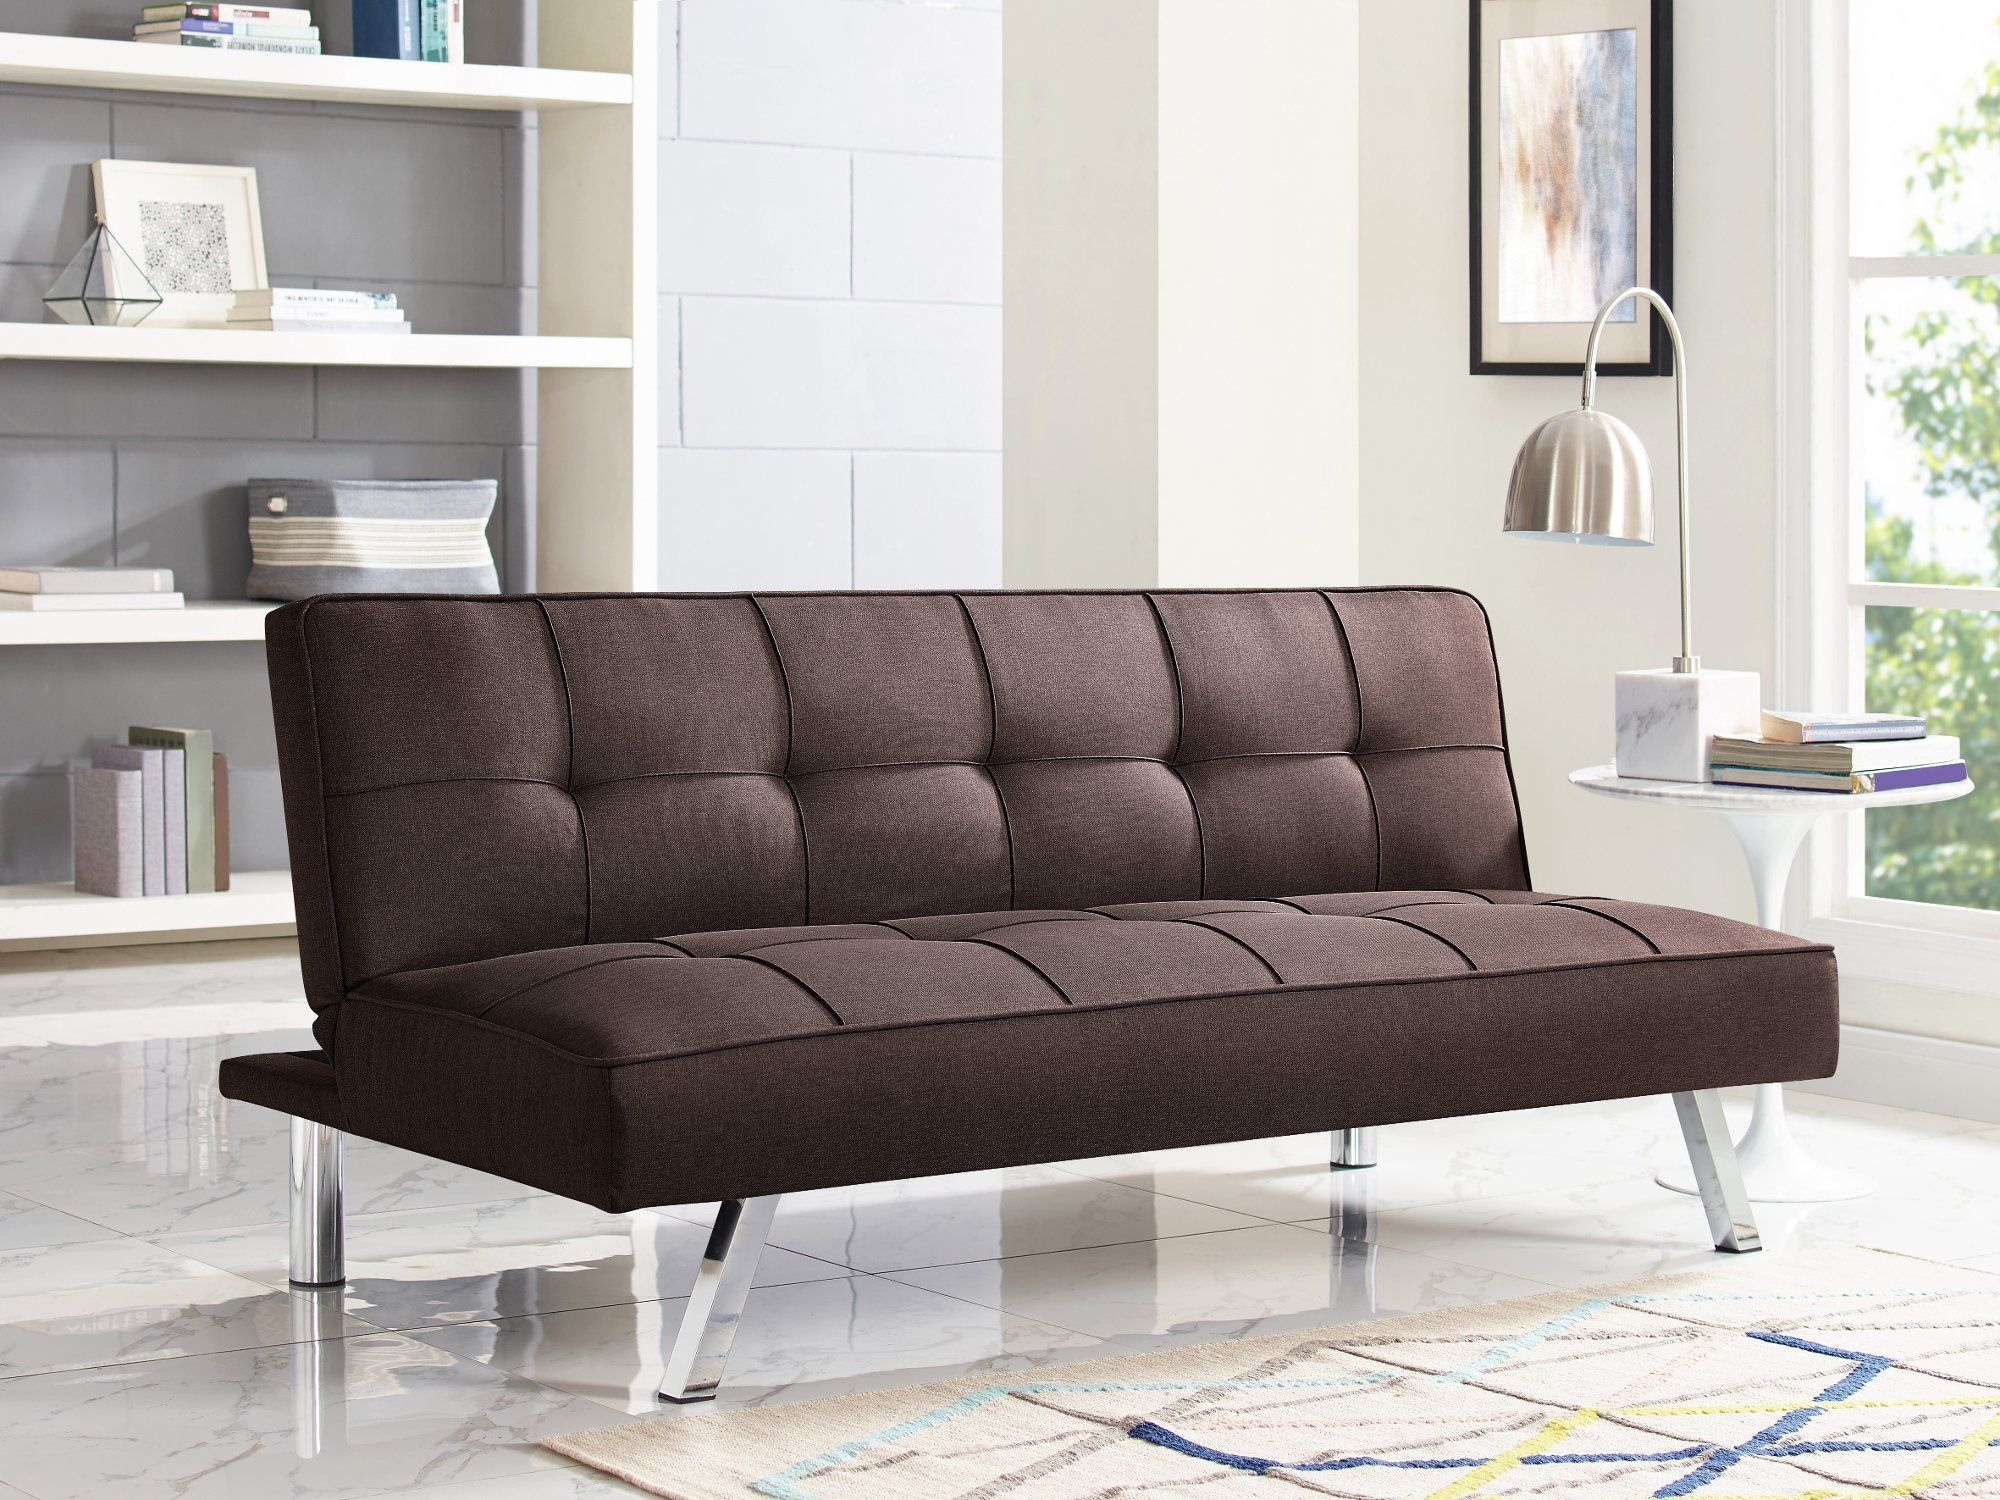 Phenomenal Modern Java Brown Convertible Sofa Bed Calton Caraccident5 Cool Chair Designs And Ideas Caraccident5Info